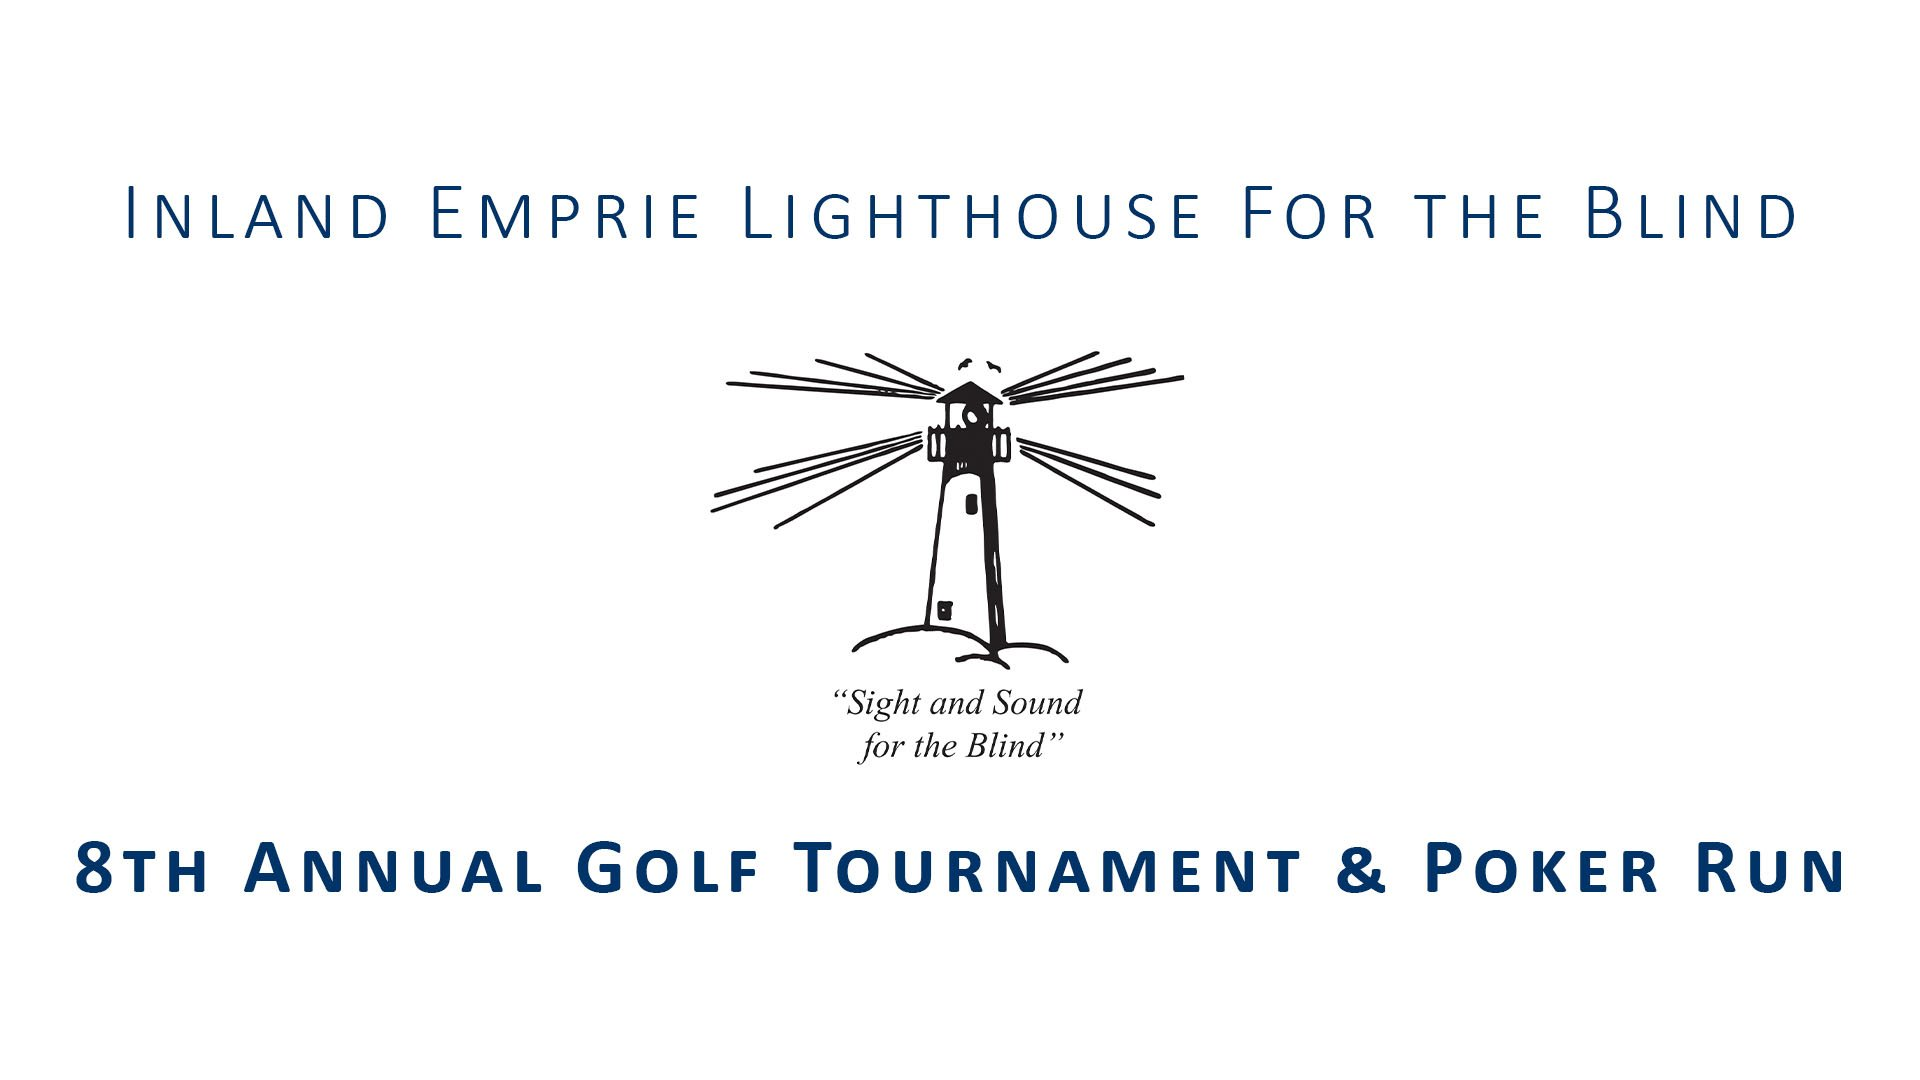 Inland Empire Lighthouse for the Blind 8th Annual Golf Tournament & Poker Run